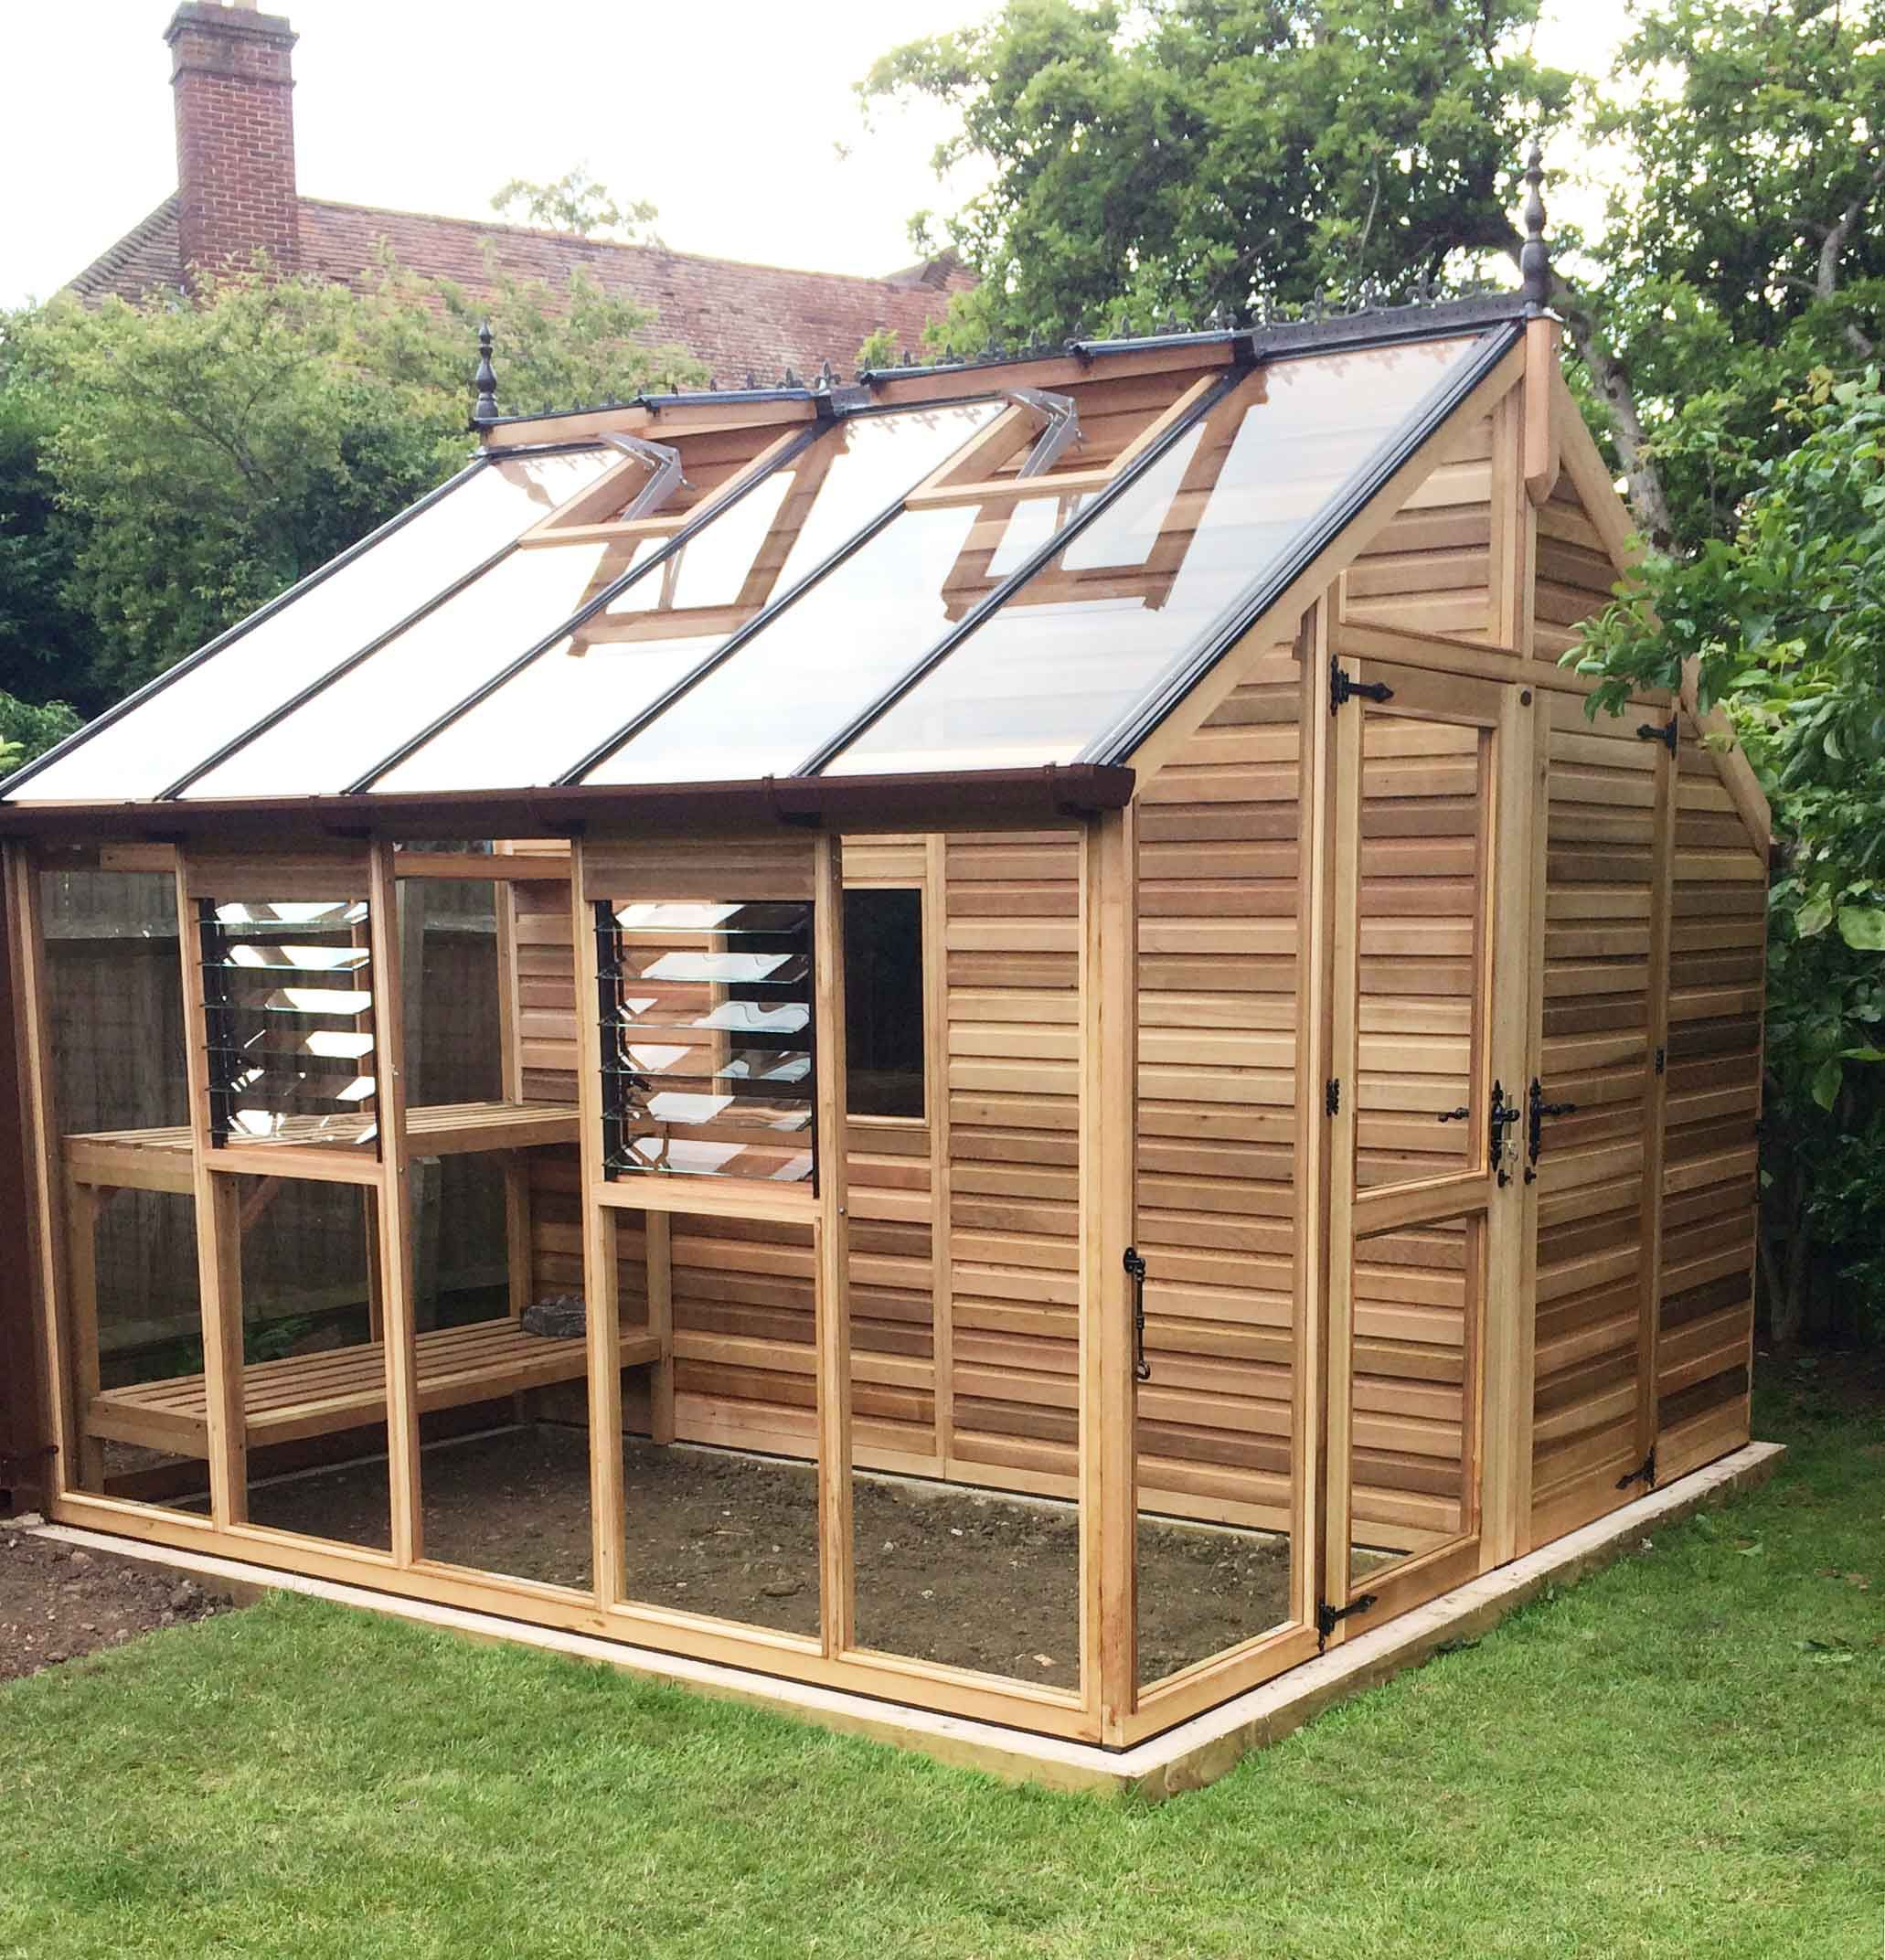 Cedar centaur shed greenhouse combo 12x12 gardening for Garden greenhouse design